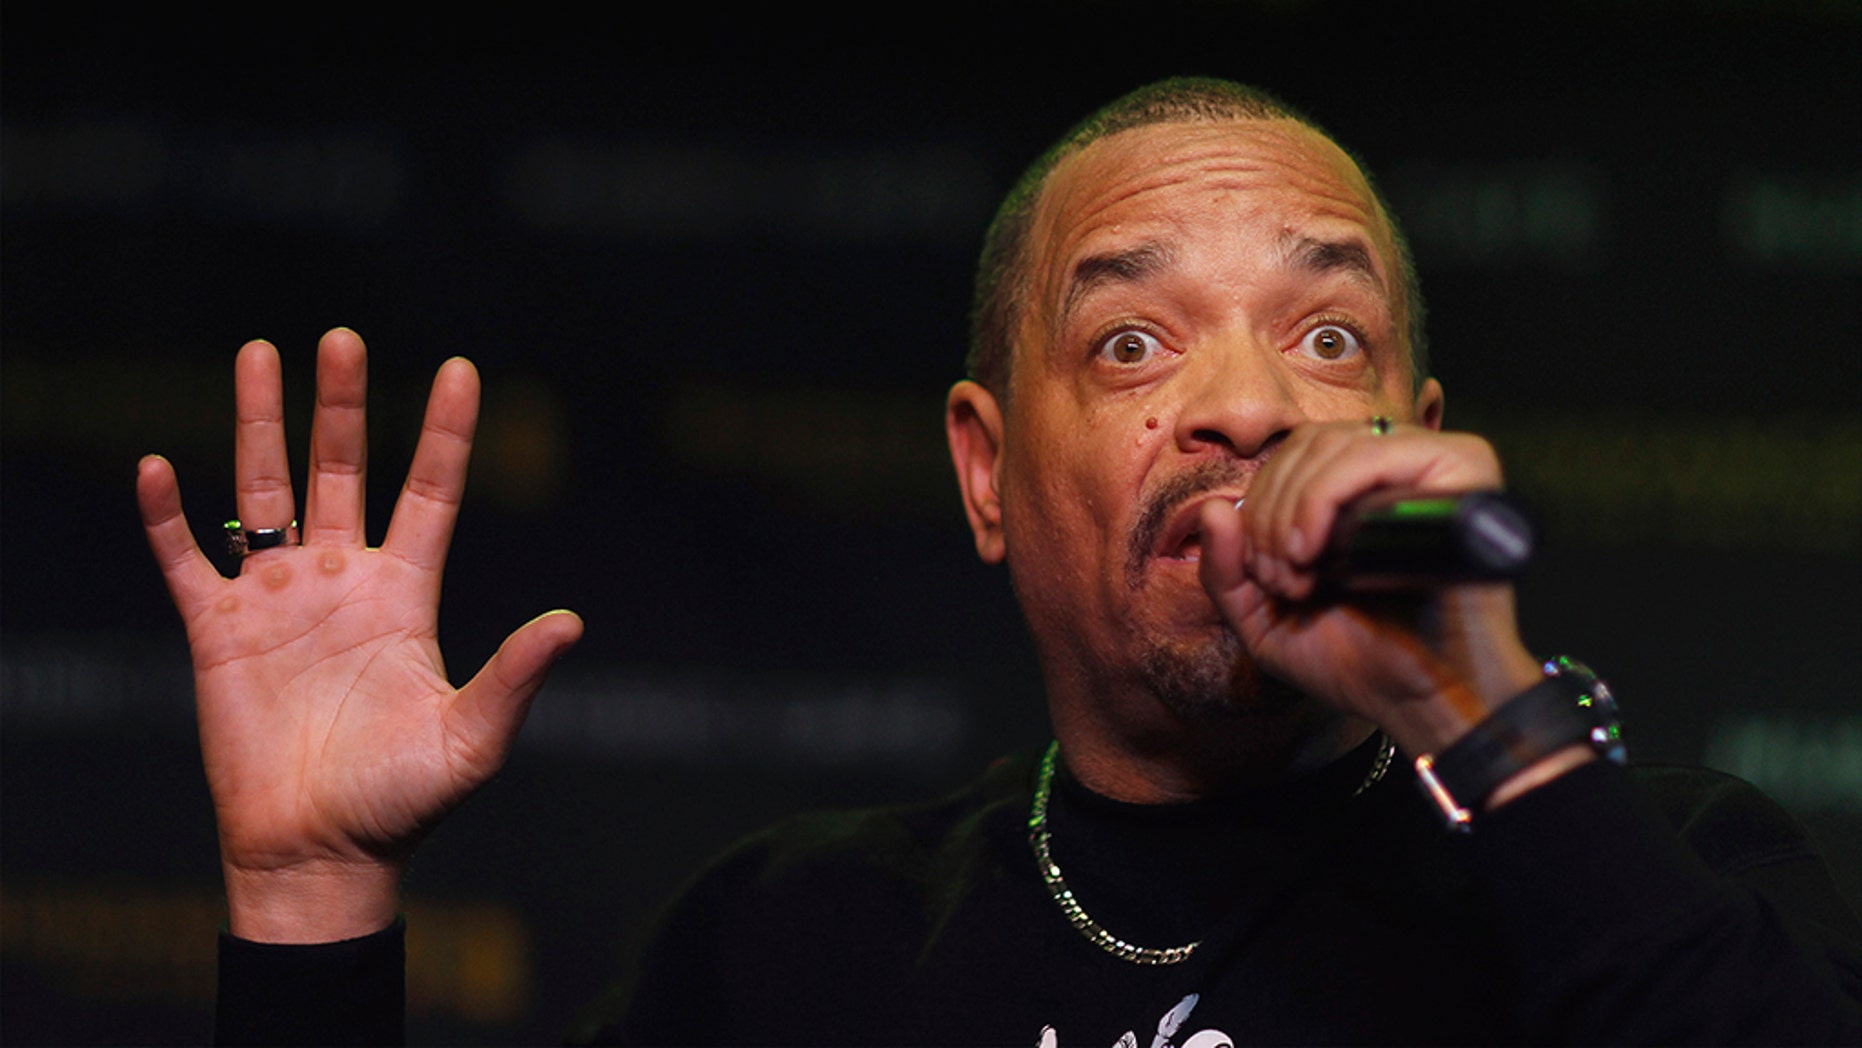 Ice-T, pictured here in 2012, tweeted on Friday he's never had a bagel.